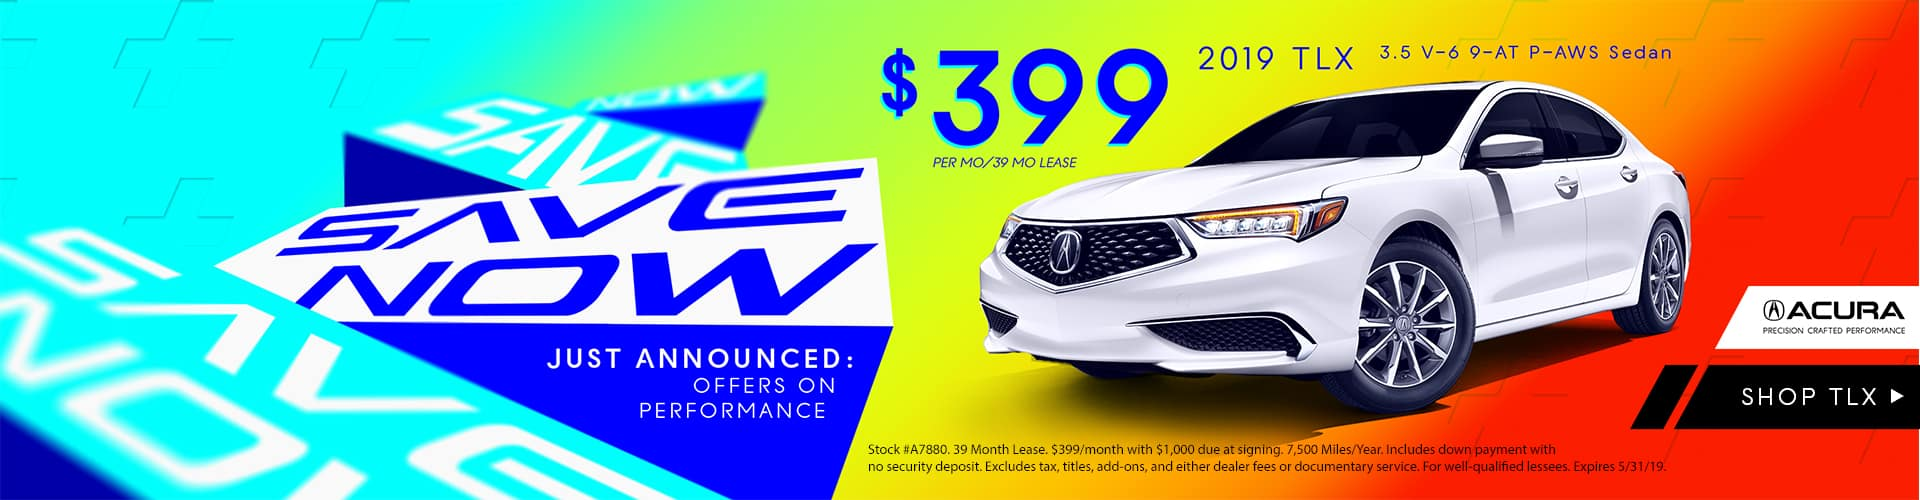 2019 TLX Lease $399 per Month